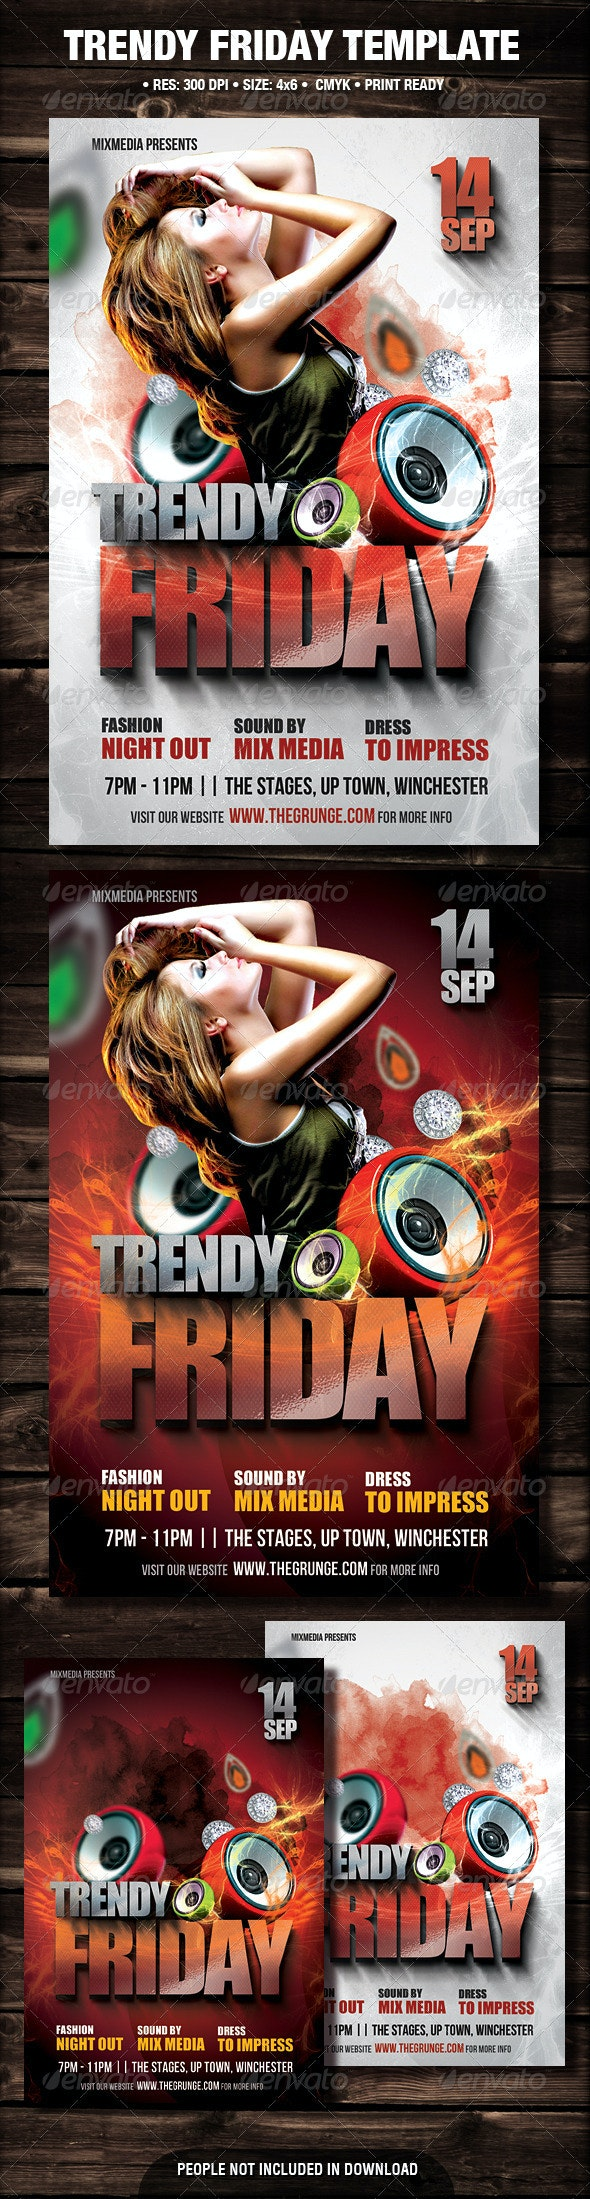 Trendy Friday Flyer - Clubs & Parties Events